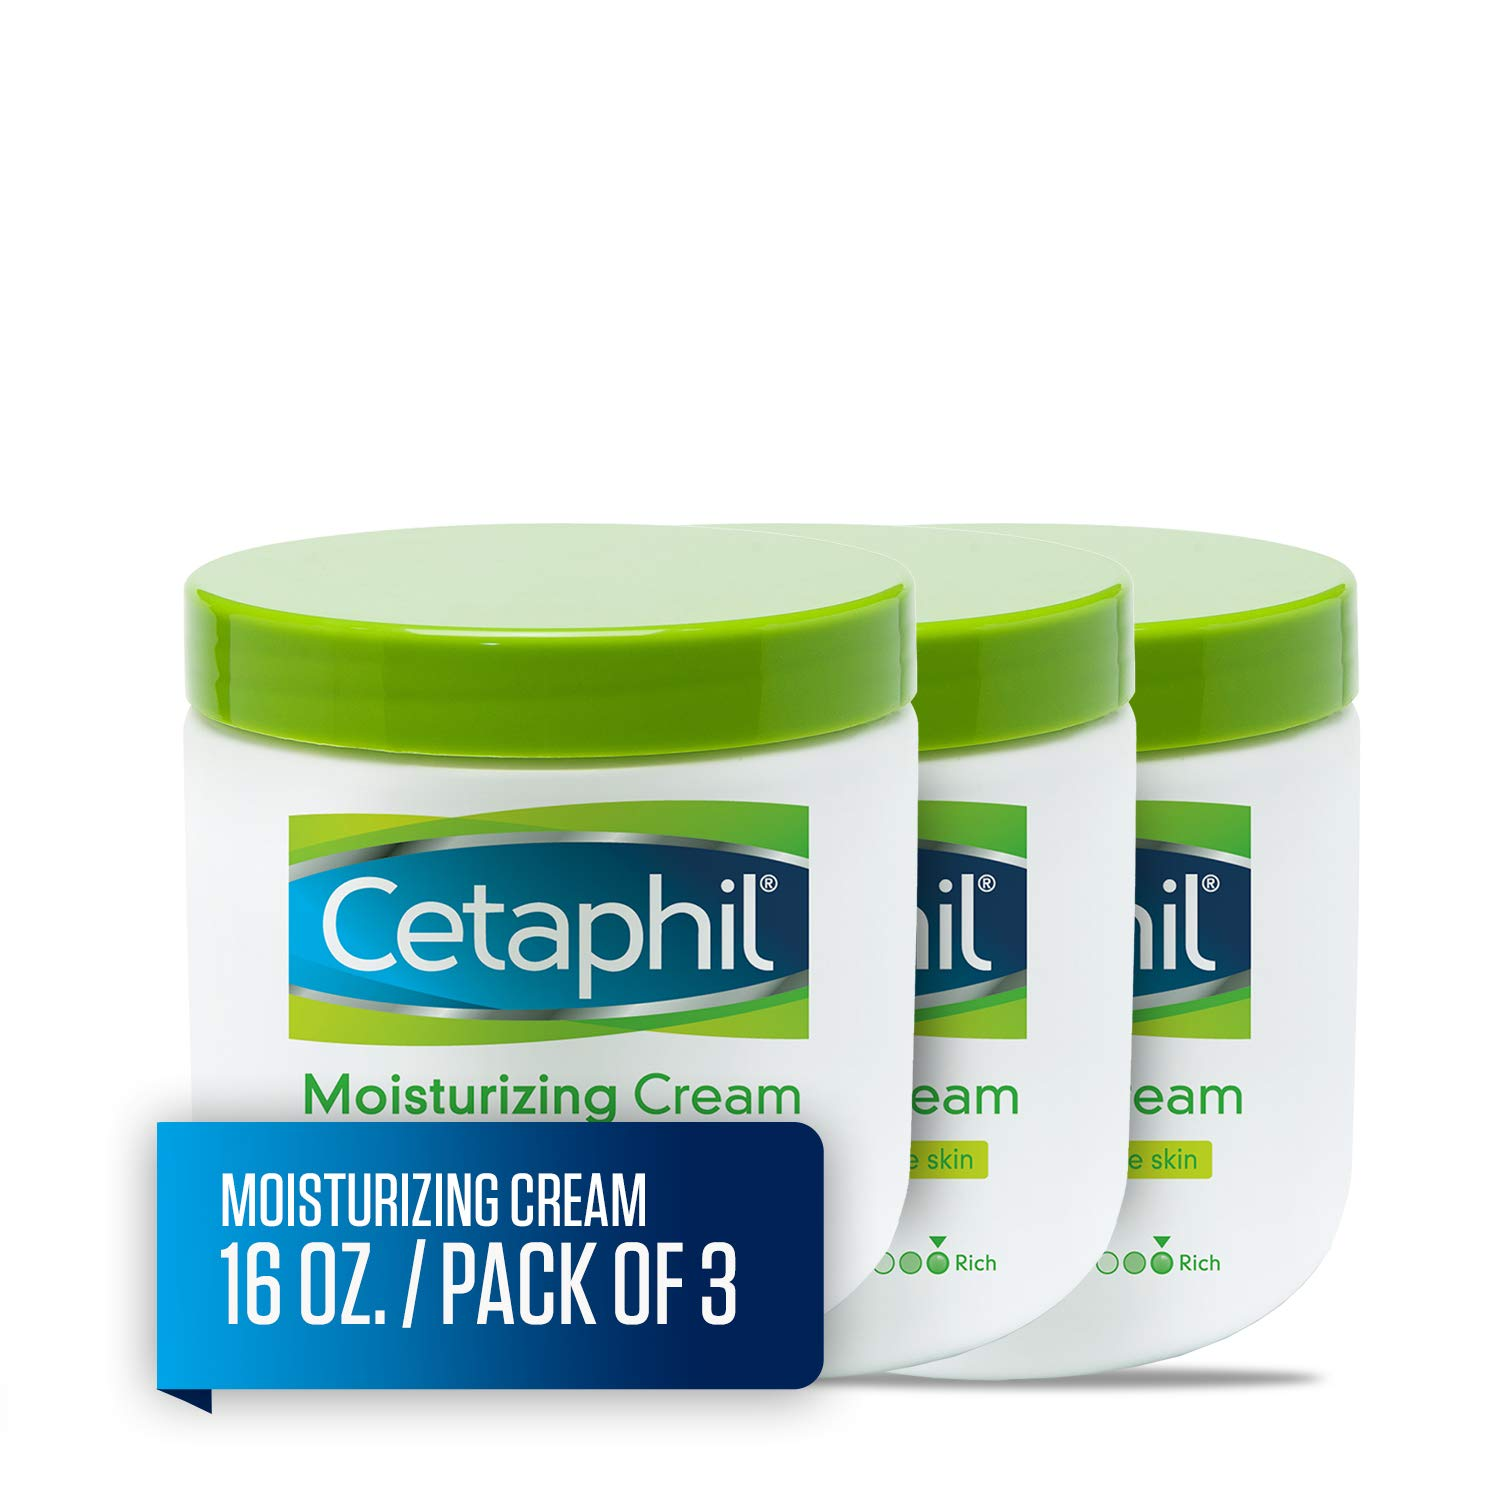 Cetaphil Moisturizing Cream for Very Dry/Sensitive Skin, Fragrance Free, 16 Ounce, Pack of 3 by Cetaphil